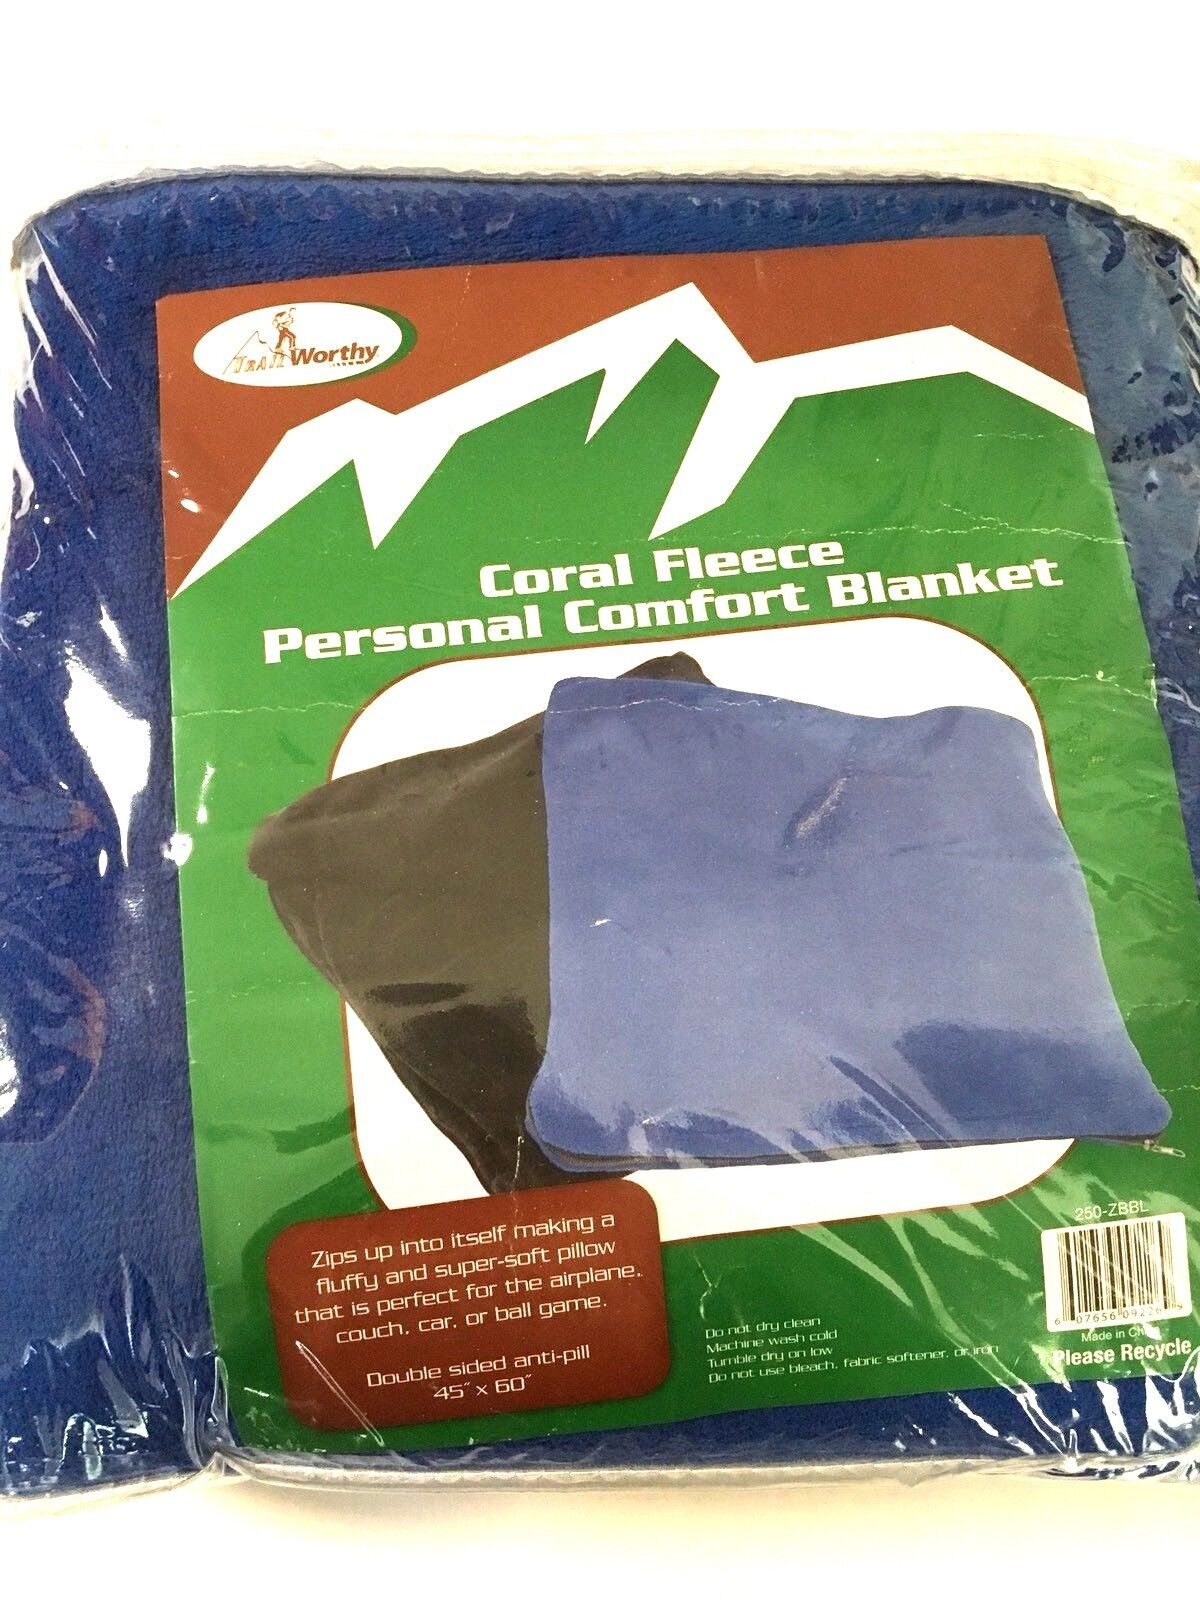 Blanket Fleece Personal Comfort Blue by Trail Worthy Coral f